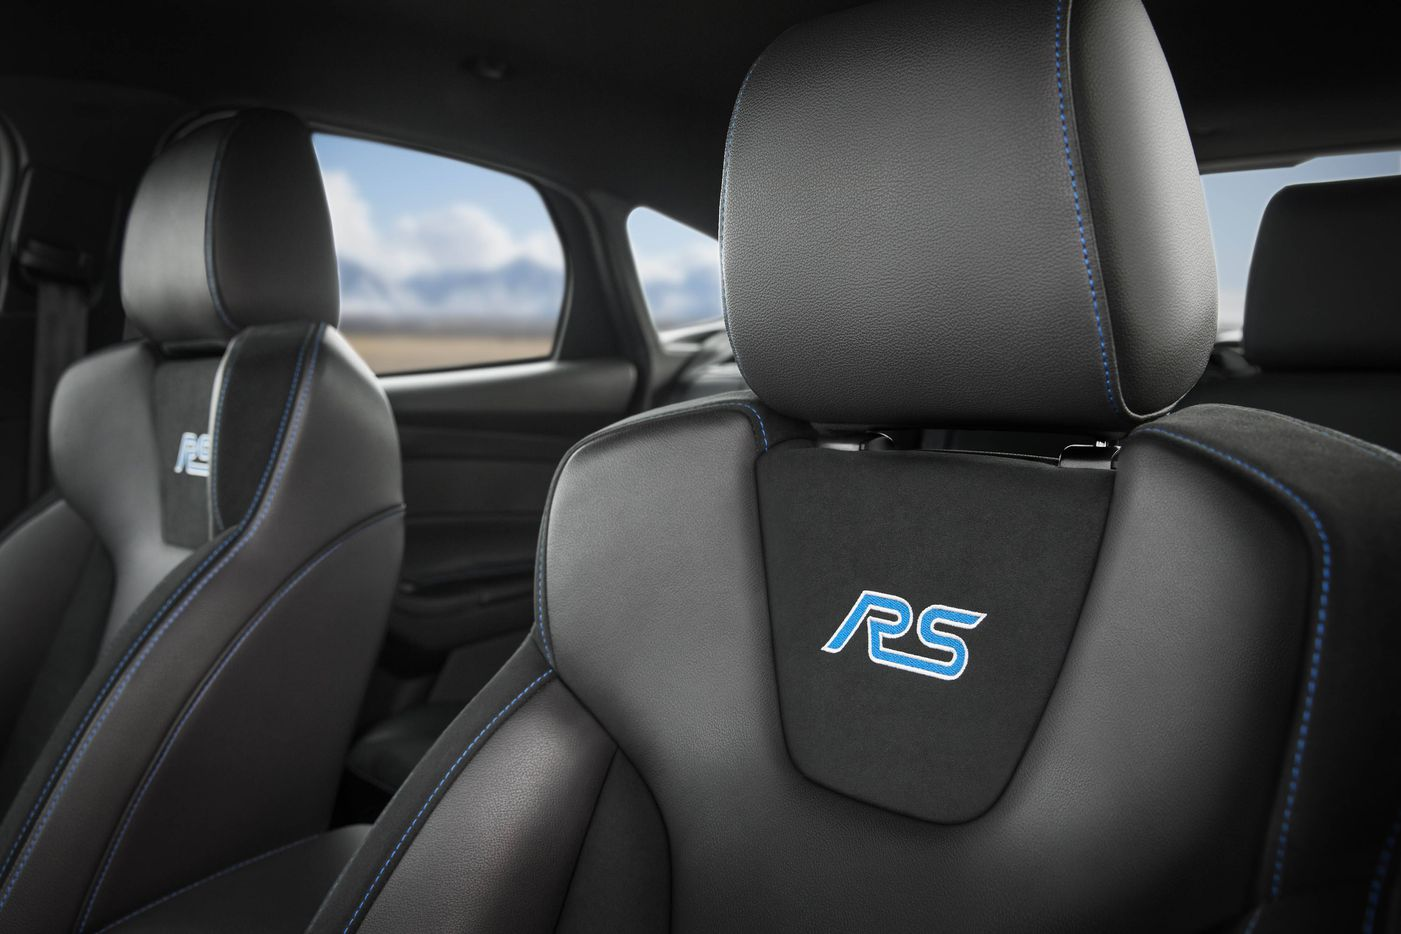 The basic car comes standard with a leather-wrapped tilt steering wheel, dual power point plug-ins and 60-40 split rear seats, and it wears comfortable Recaro upholstery.